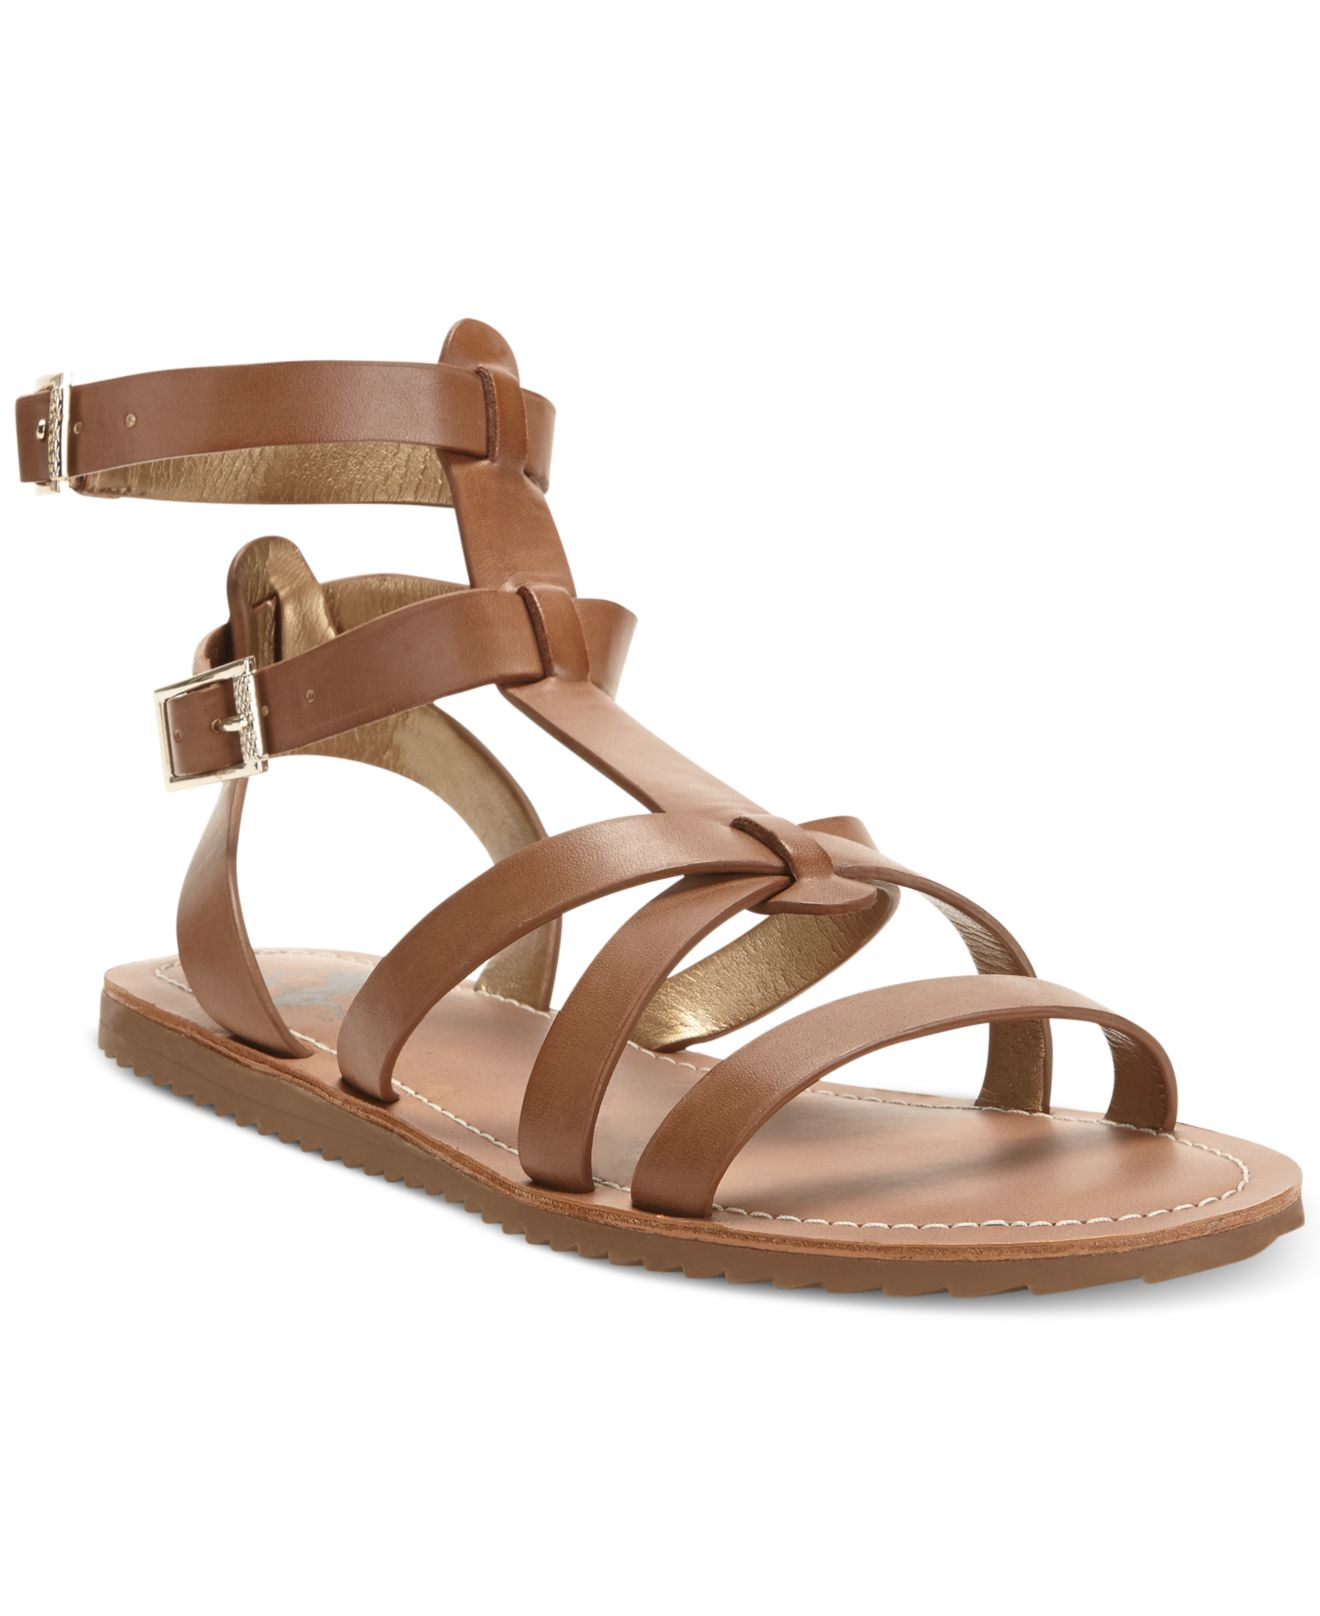 1e234c8552ad Gallery. Previously sold at  Macy s · Women s Gladiator Sandals Women s Sam  Edelman ...